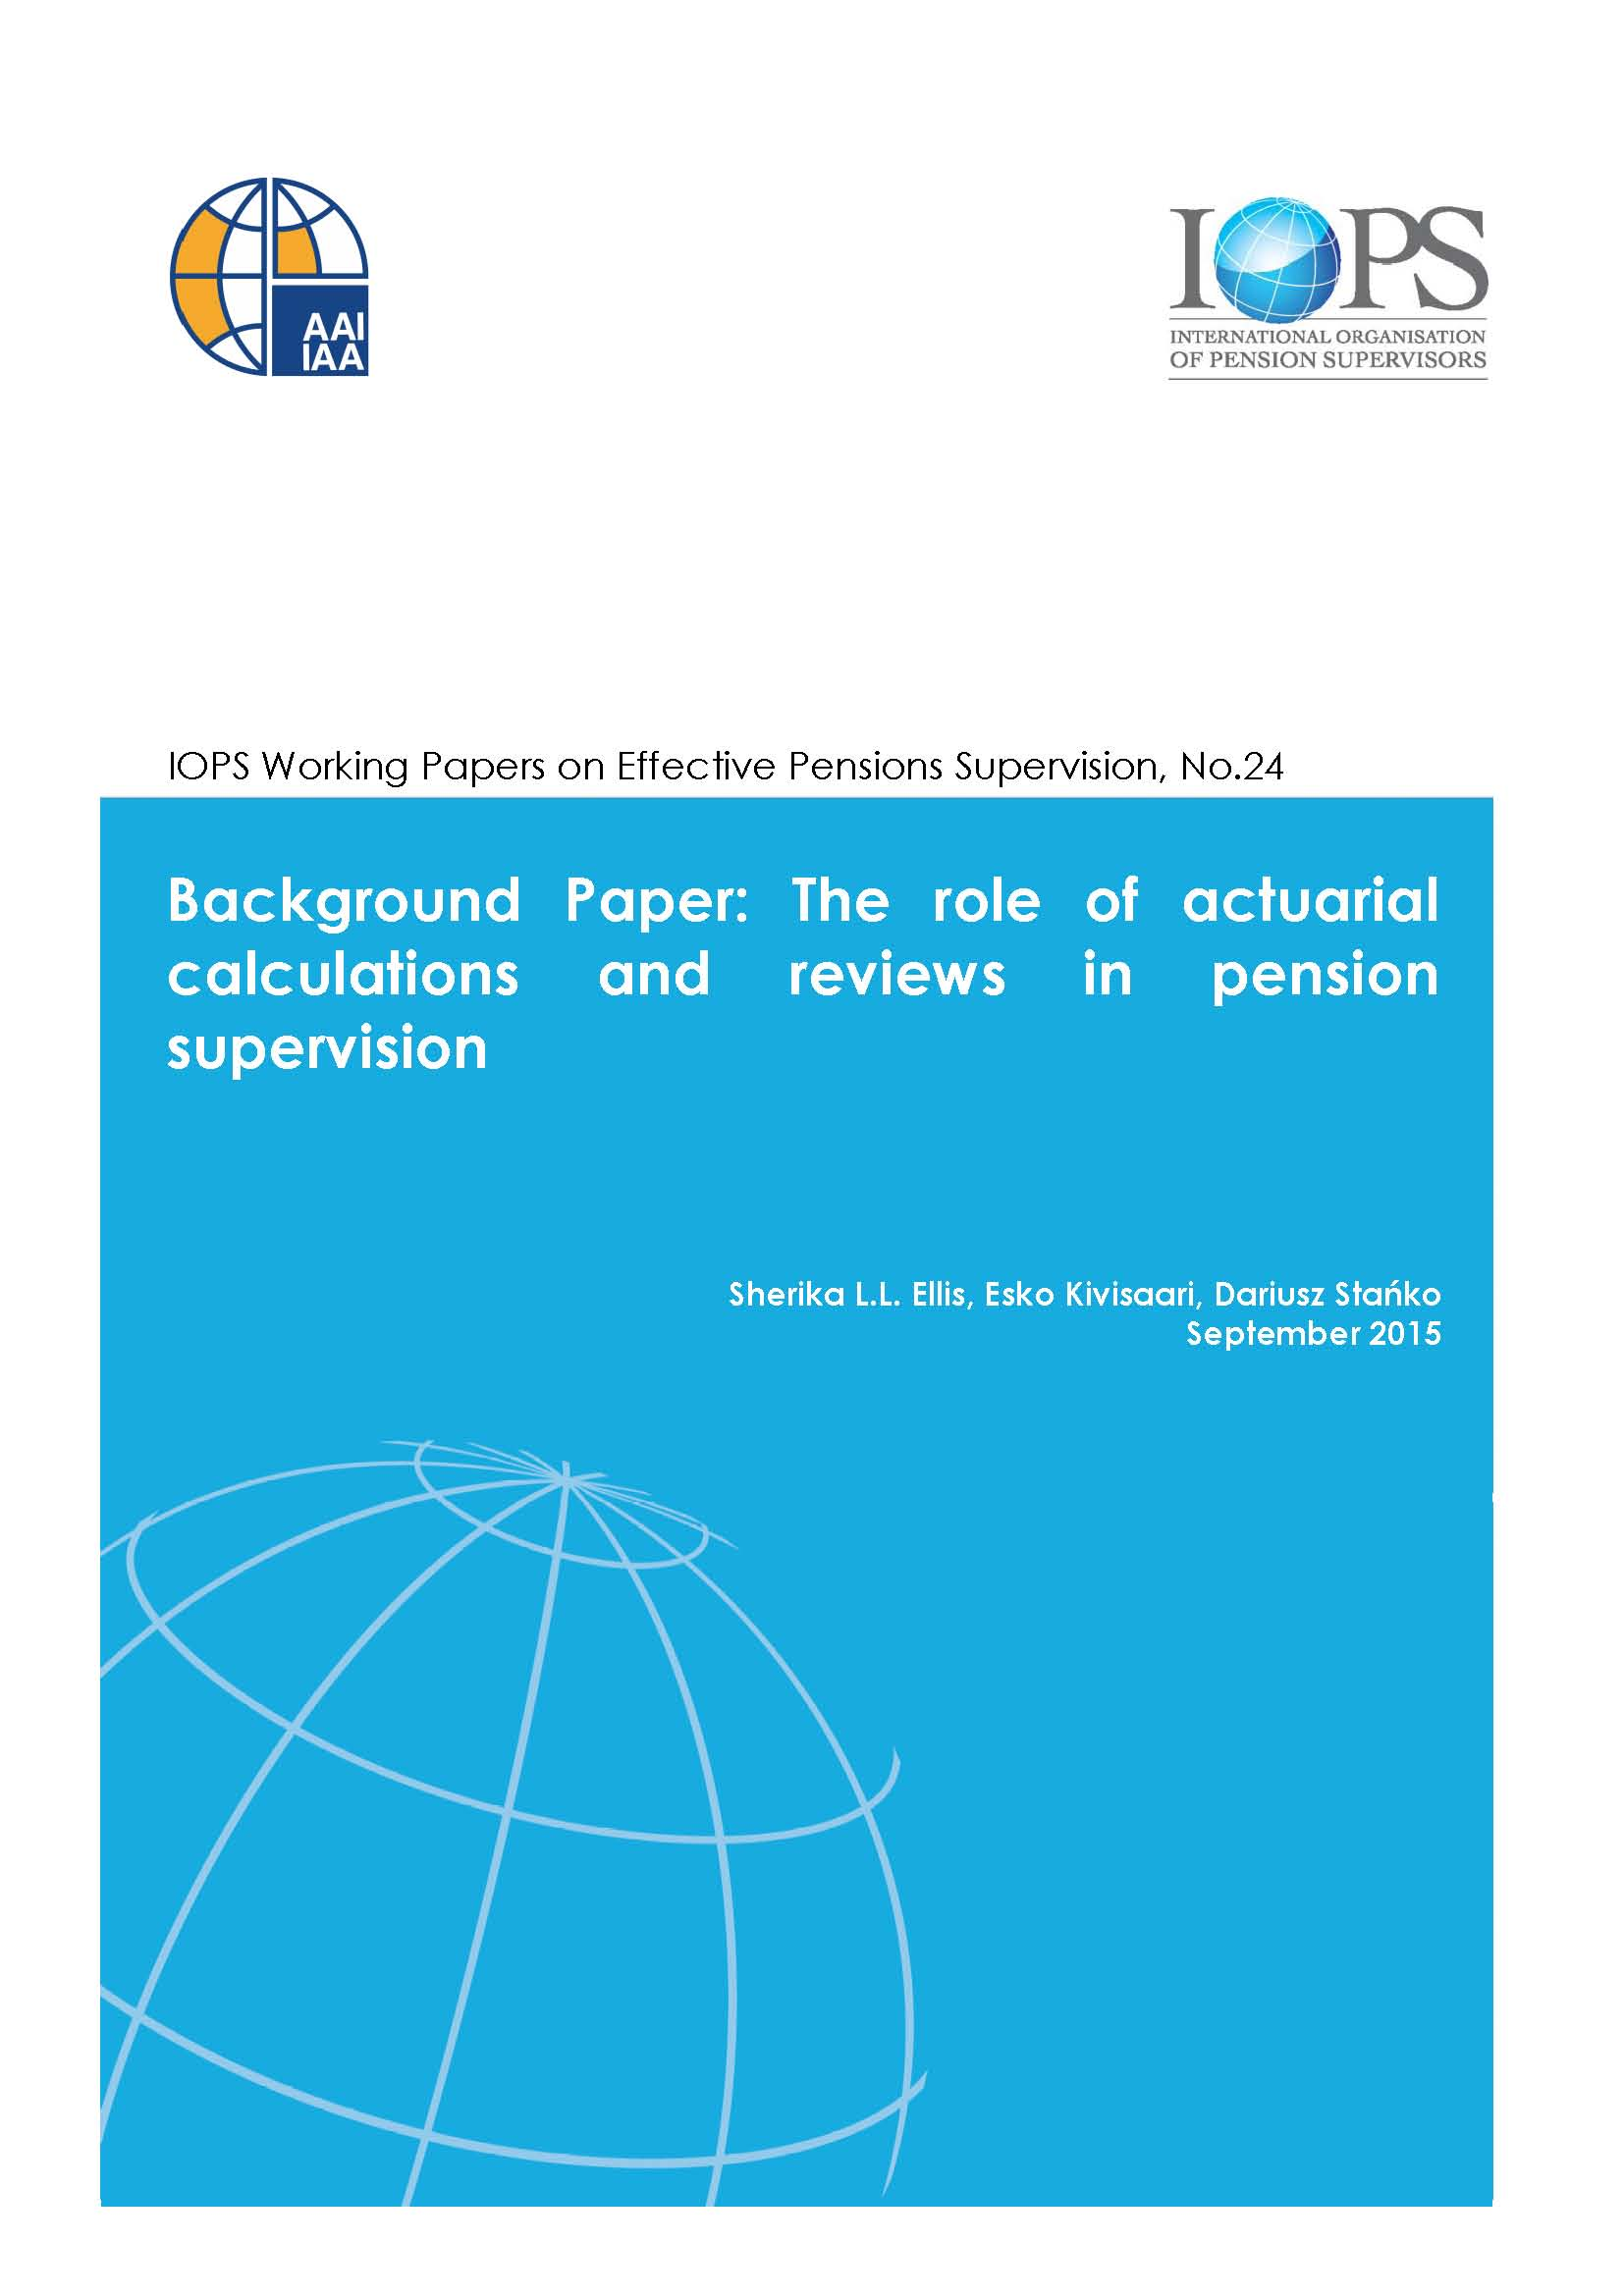 Joint Background Paper by IOPS and IAA